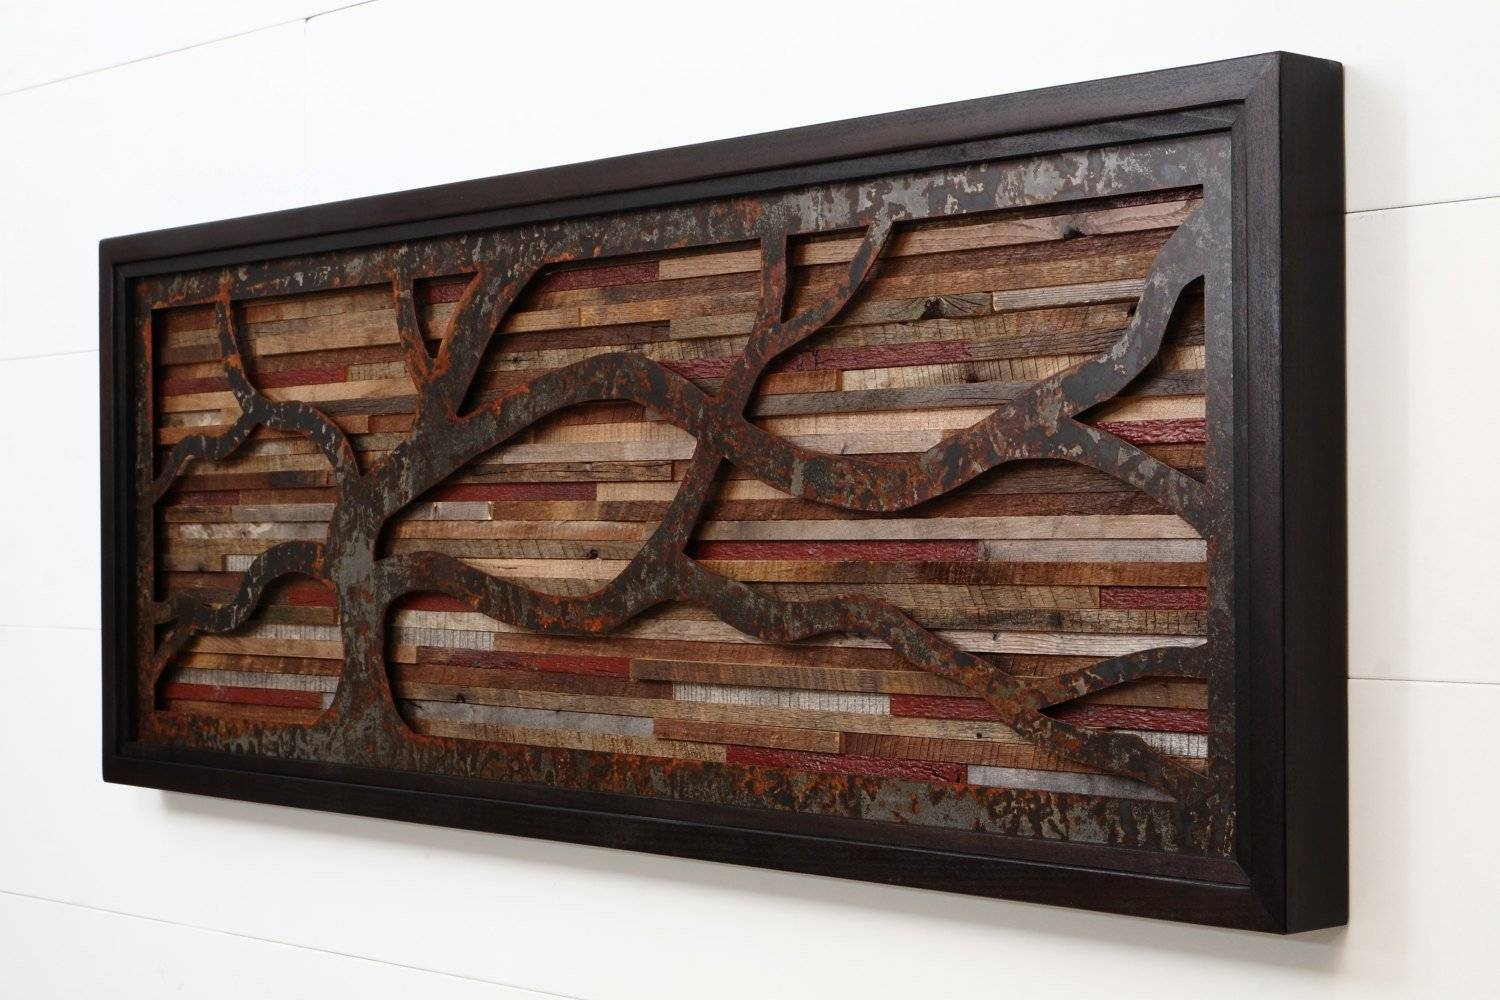 Outstanding Reclaimed Wood Wall Art – Style Motivation With 2017 Natural Wood Wall Art (View 11 of 20)